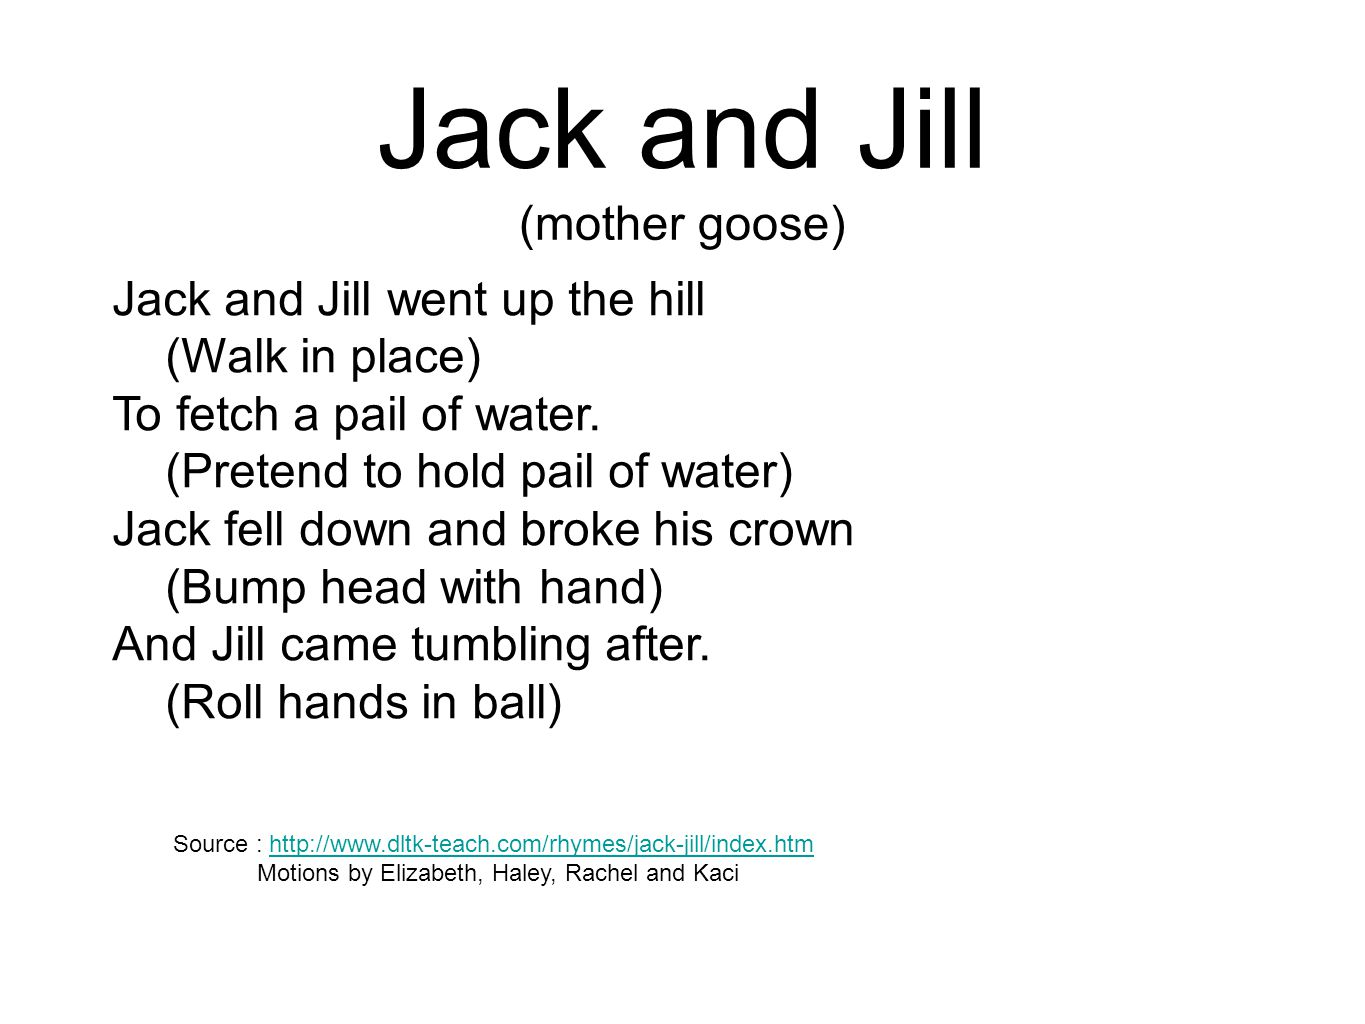 Jack and Jill (mother goose) Jack and Jill went up the hill (Walk in place) To fetch a pail of water. (Pretend to hold pail of water) Jack fell down a